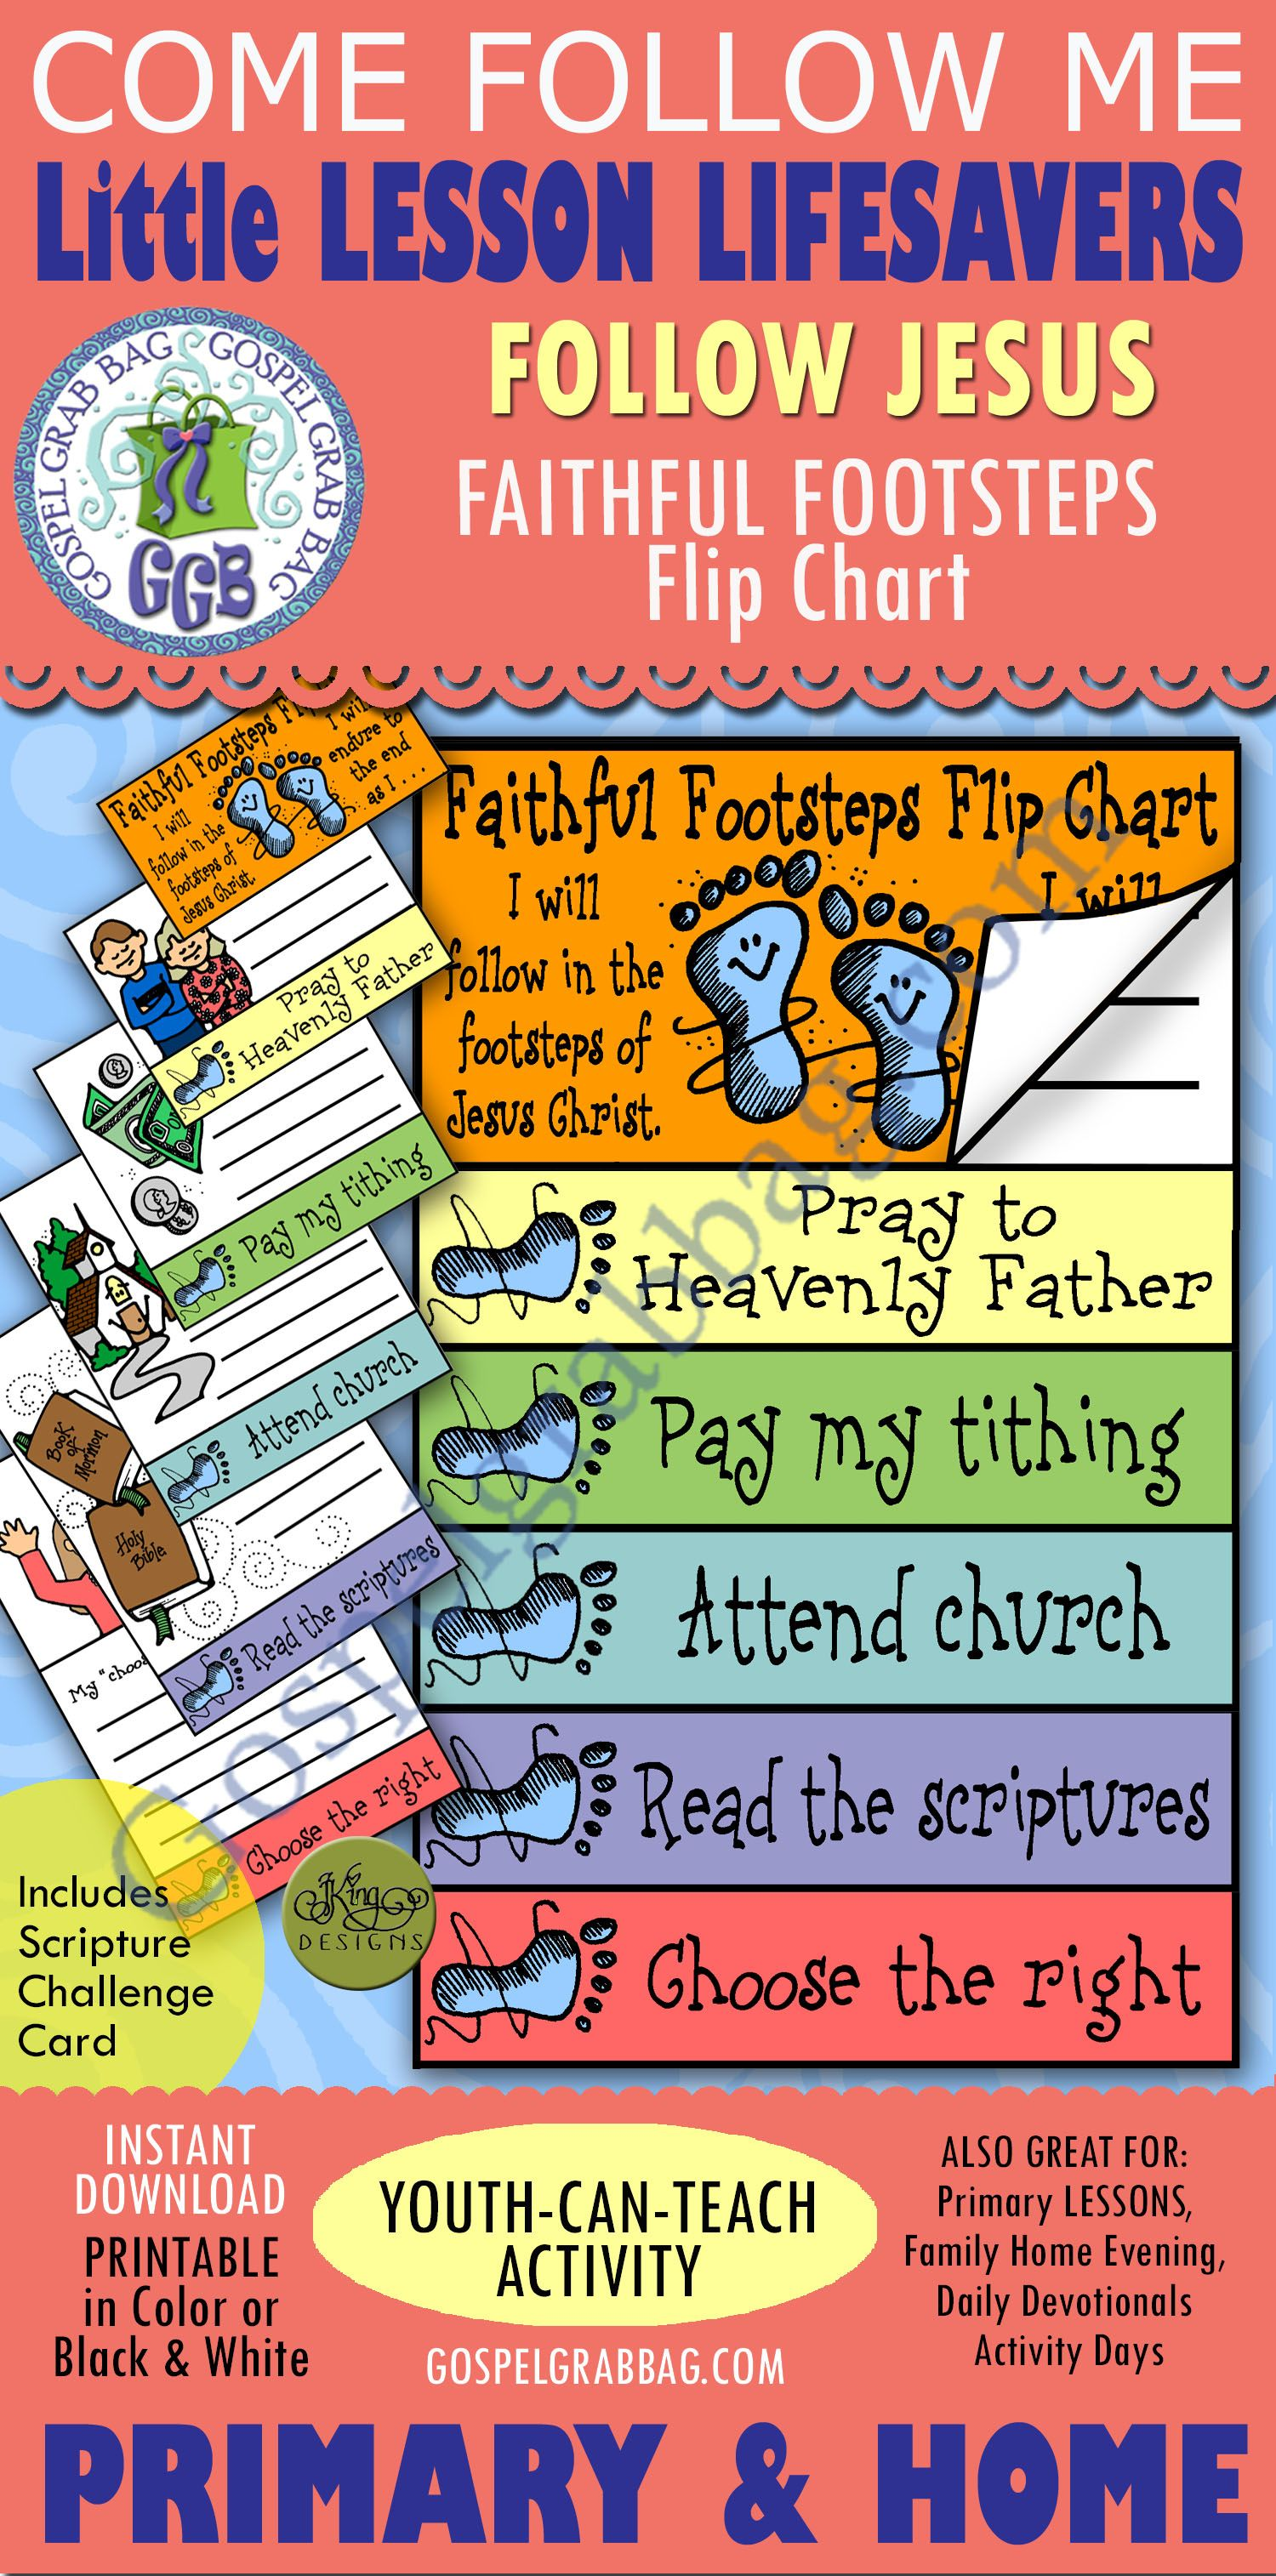 Faithful Footsteps Goal Flip Chart Family Home Evening Scripture Reading Primary Lessons